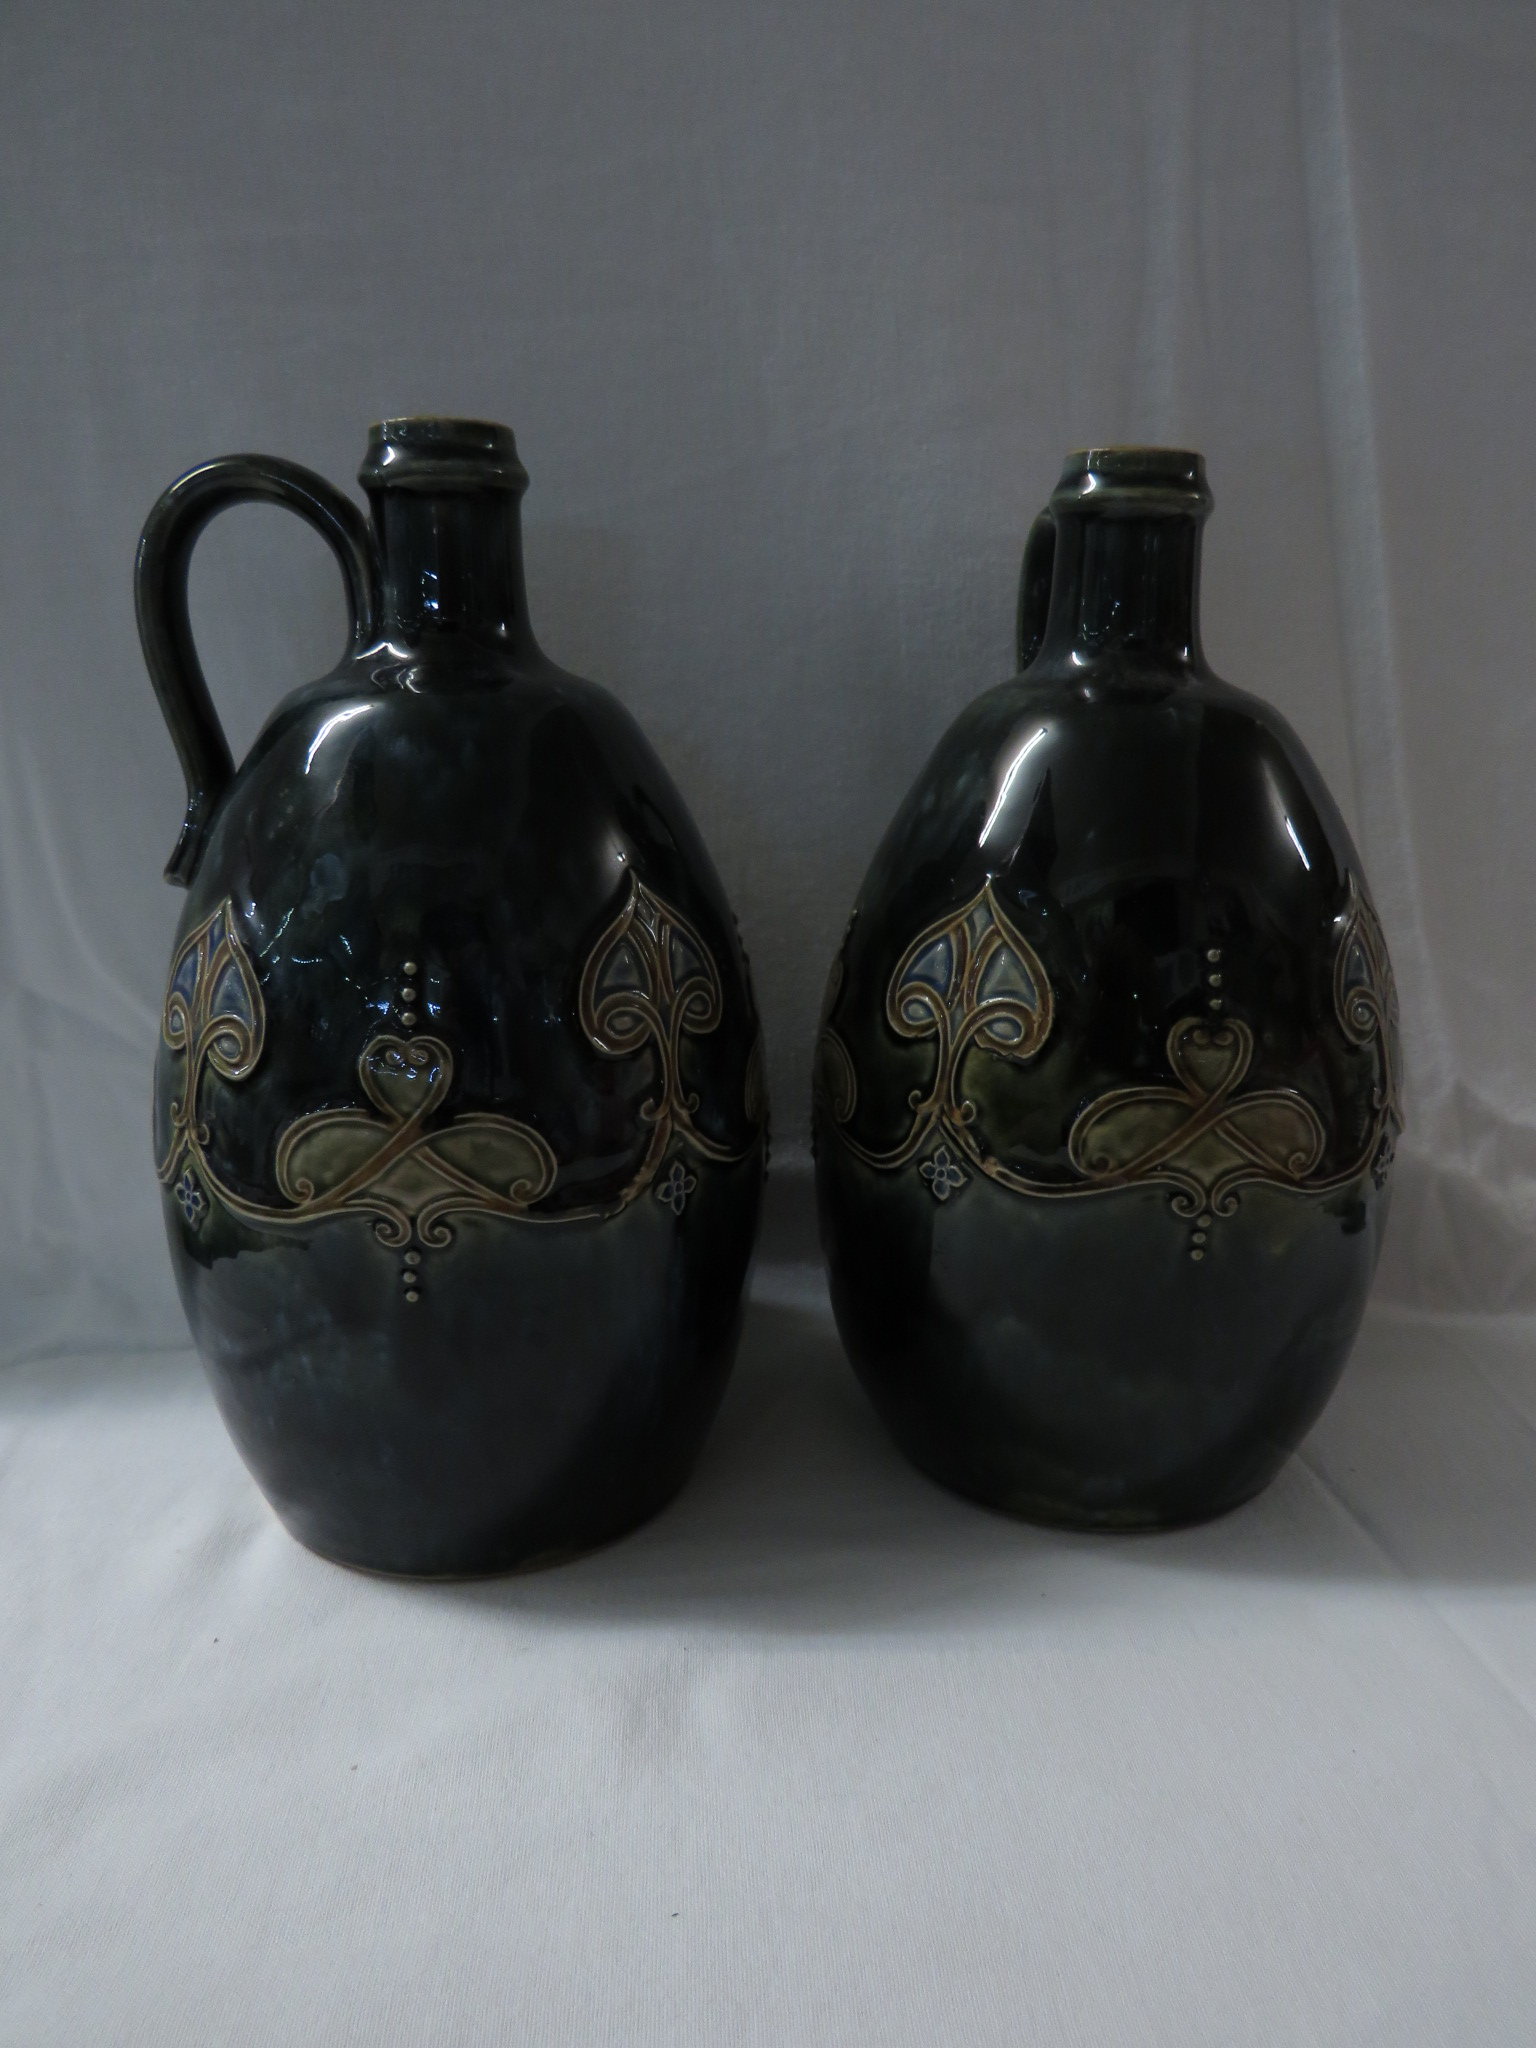 Lot 51 - Pair of Royal Doulton stoneware bottles or pitchers of ovoid shape with loop handles at the neck,